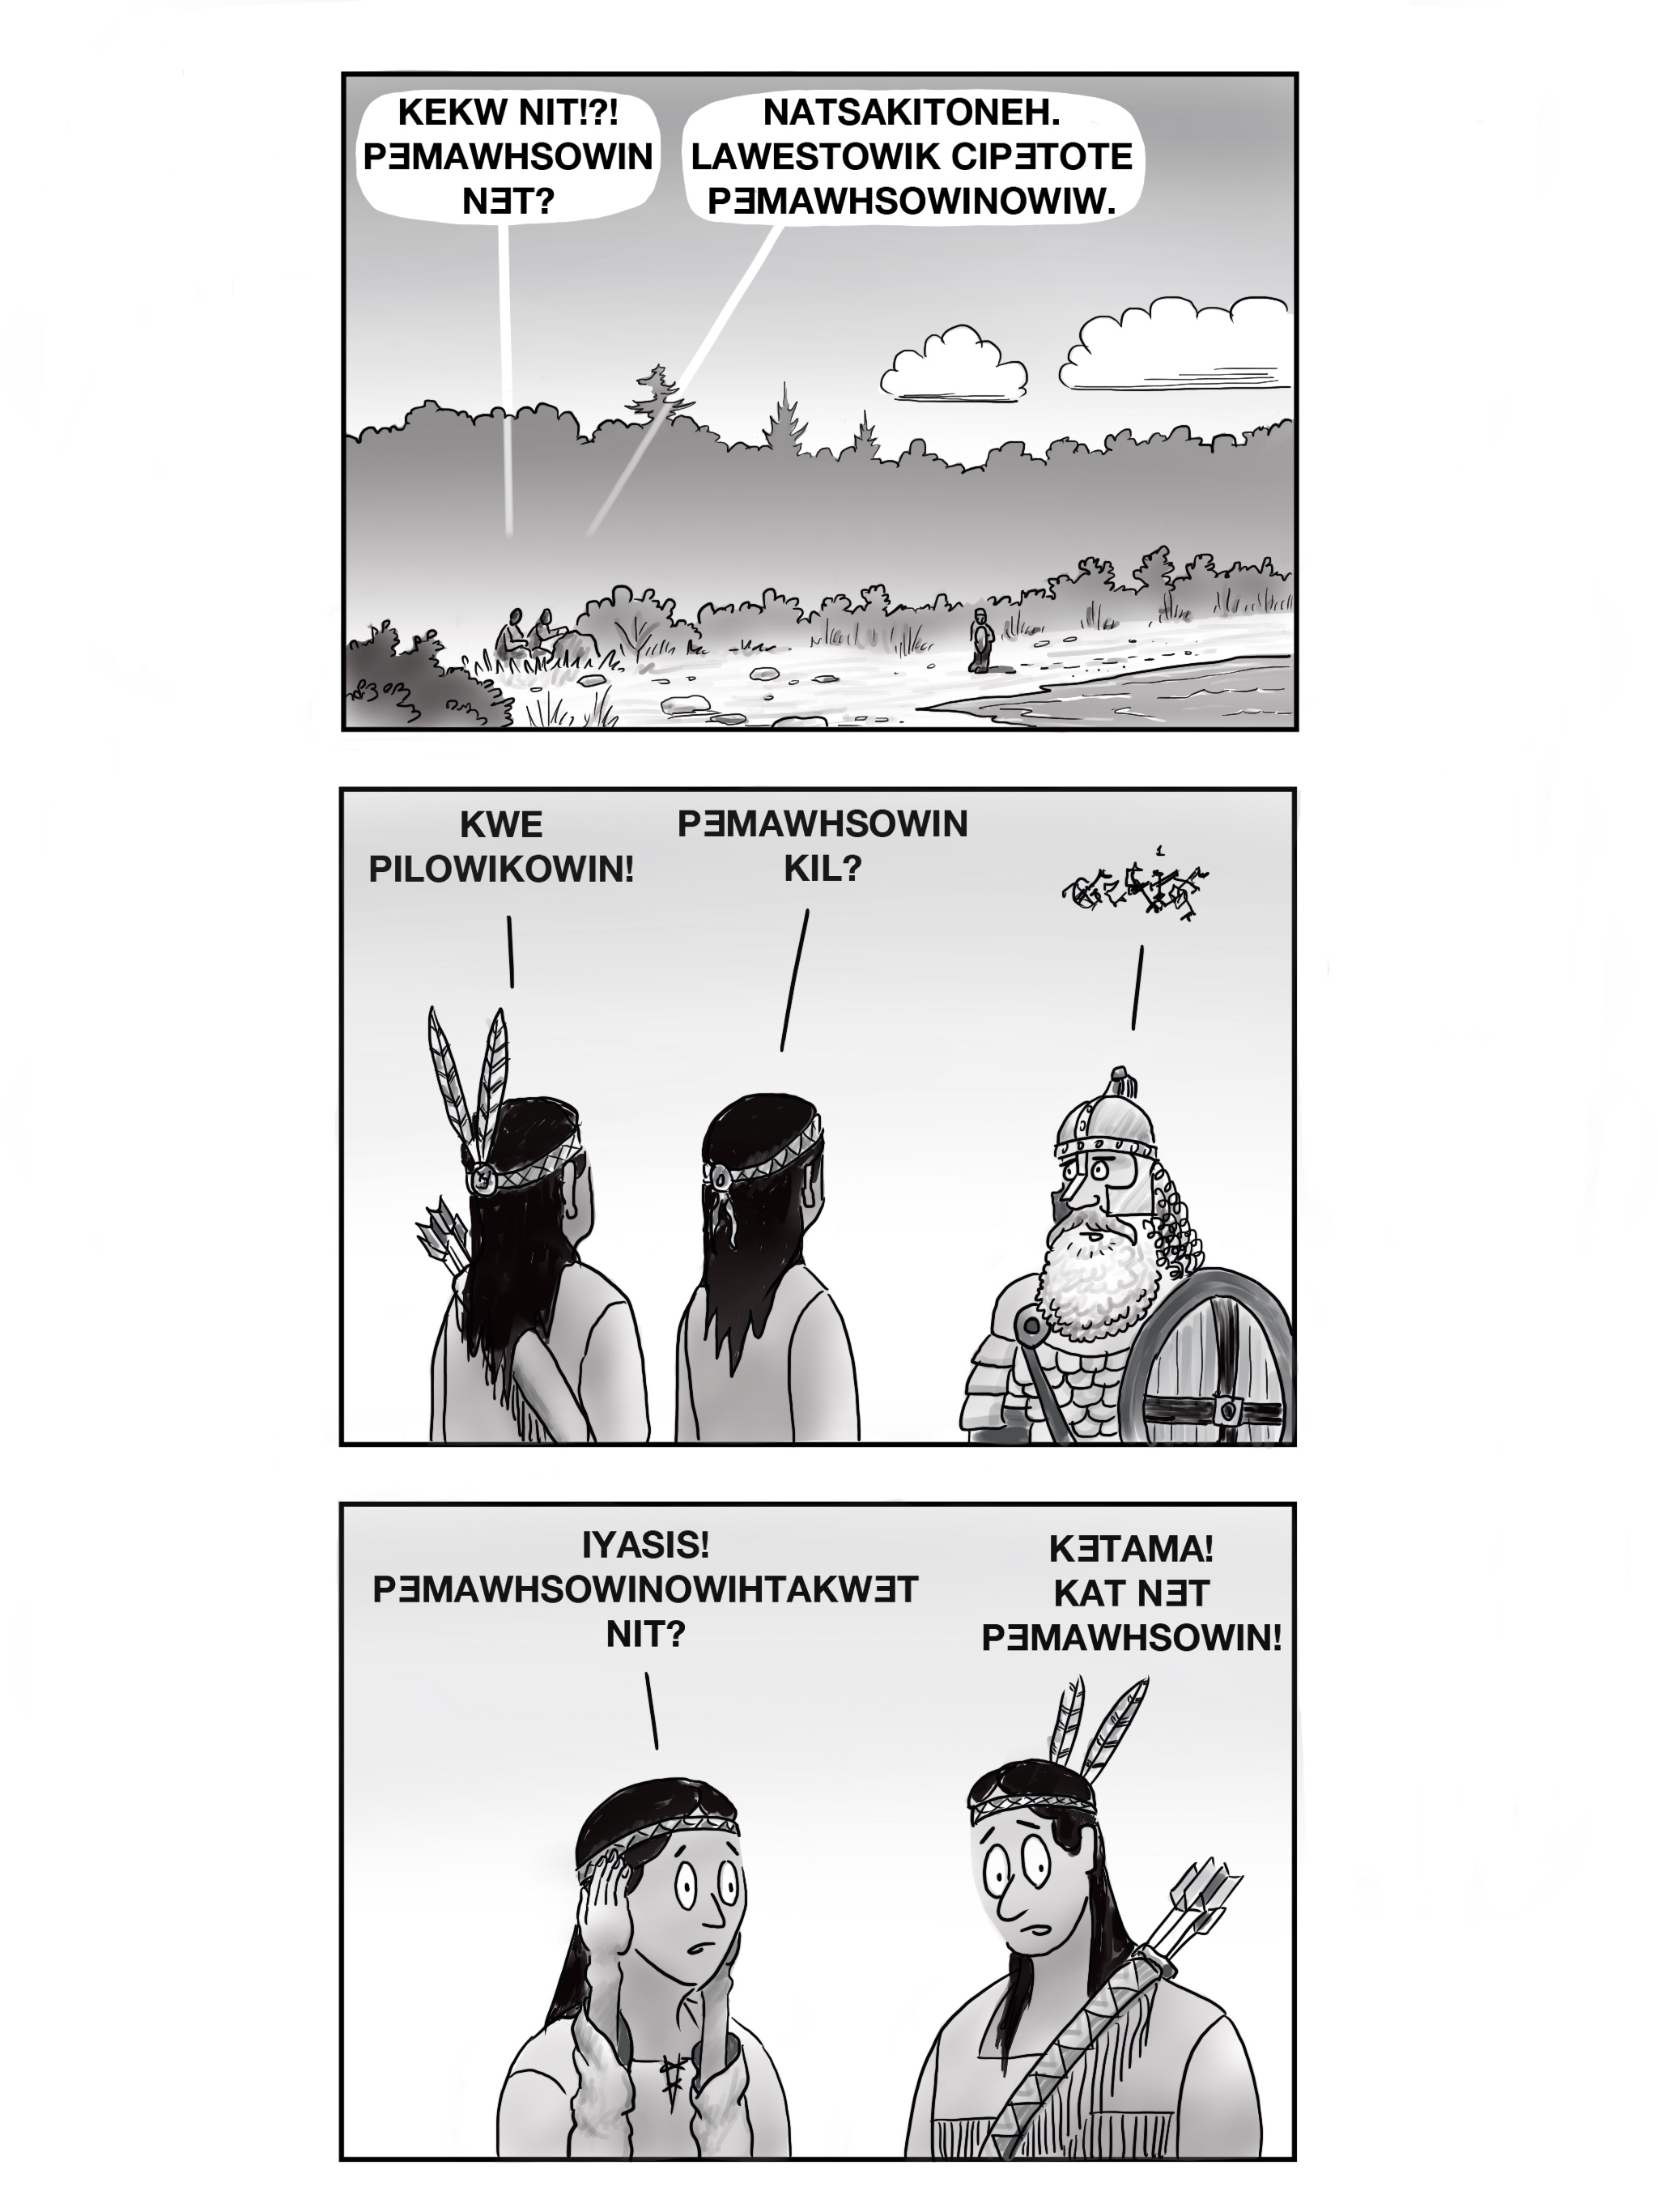 """The image is a three panel comic in black and white. The first panel depicts a shore with bushes and greenery. One person is walking along the shore, two are crouched behind a rock, as one of the crouched figures says """"KEKW NIT!?! PƎMAWHSOWIN NƎT?"""" and the other replies with """"NATSAKITONEH. LAWESTOWIK CIPƎTOTE PƎMAWHSOWINOWIW."""" The next panel depicts two Wabanaki people from behind standing next to each other facing a bearded man in Viking armor. One of the native people says """"KWE PILOWIKOWIN!"""" and the other follows with """"PƎMAWHSOWIN KIL?"""" The bearded man's reply is represented as a tangled scribbled set of lines, unintelligible and unrecognizable as language. The final panel depicts the two native individuals from the front, their eyes wide and looking concerned, the person on the left with their hands up against the sides of their face. The person on the left says """"IYASIS! PƎMAWHSOWINOWIHTAKWƎT NIT?"""" and the other says """"KƎTAMA! KAT NƎT PƎMAWHSOWIN!"""""""